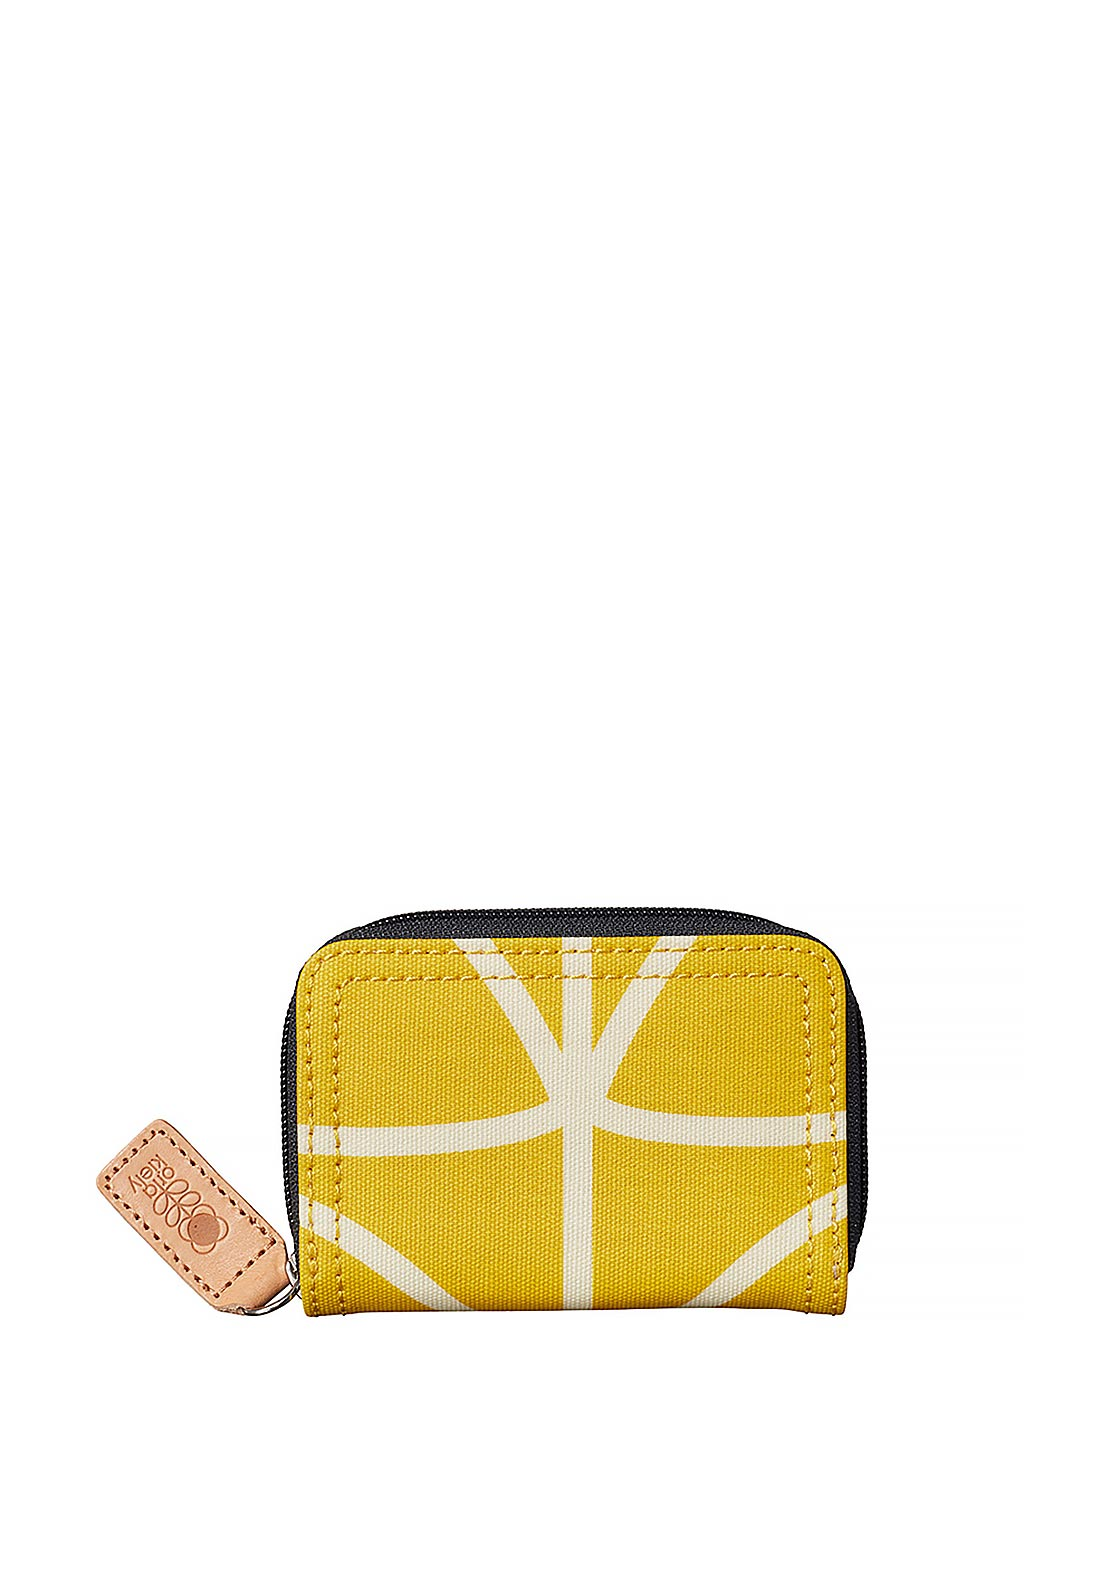 Orla Kiely Giant Linear Stem Medium Zip Wallet, Dandelion